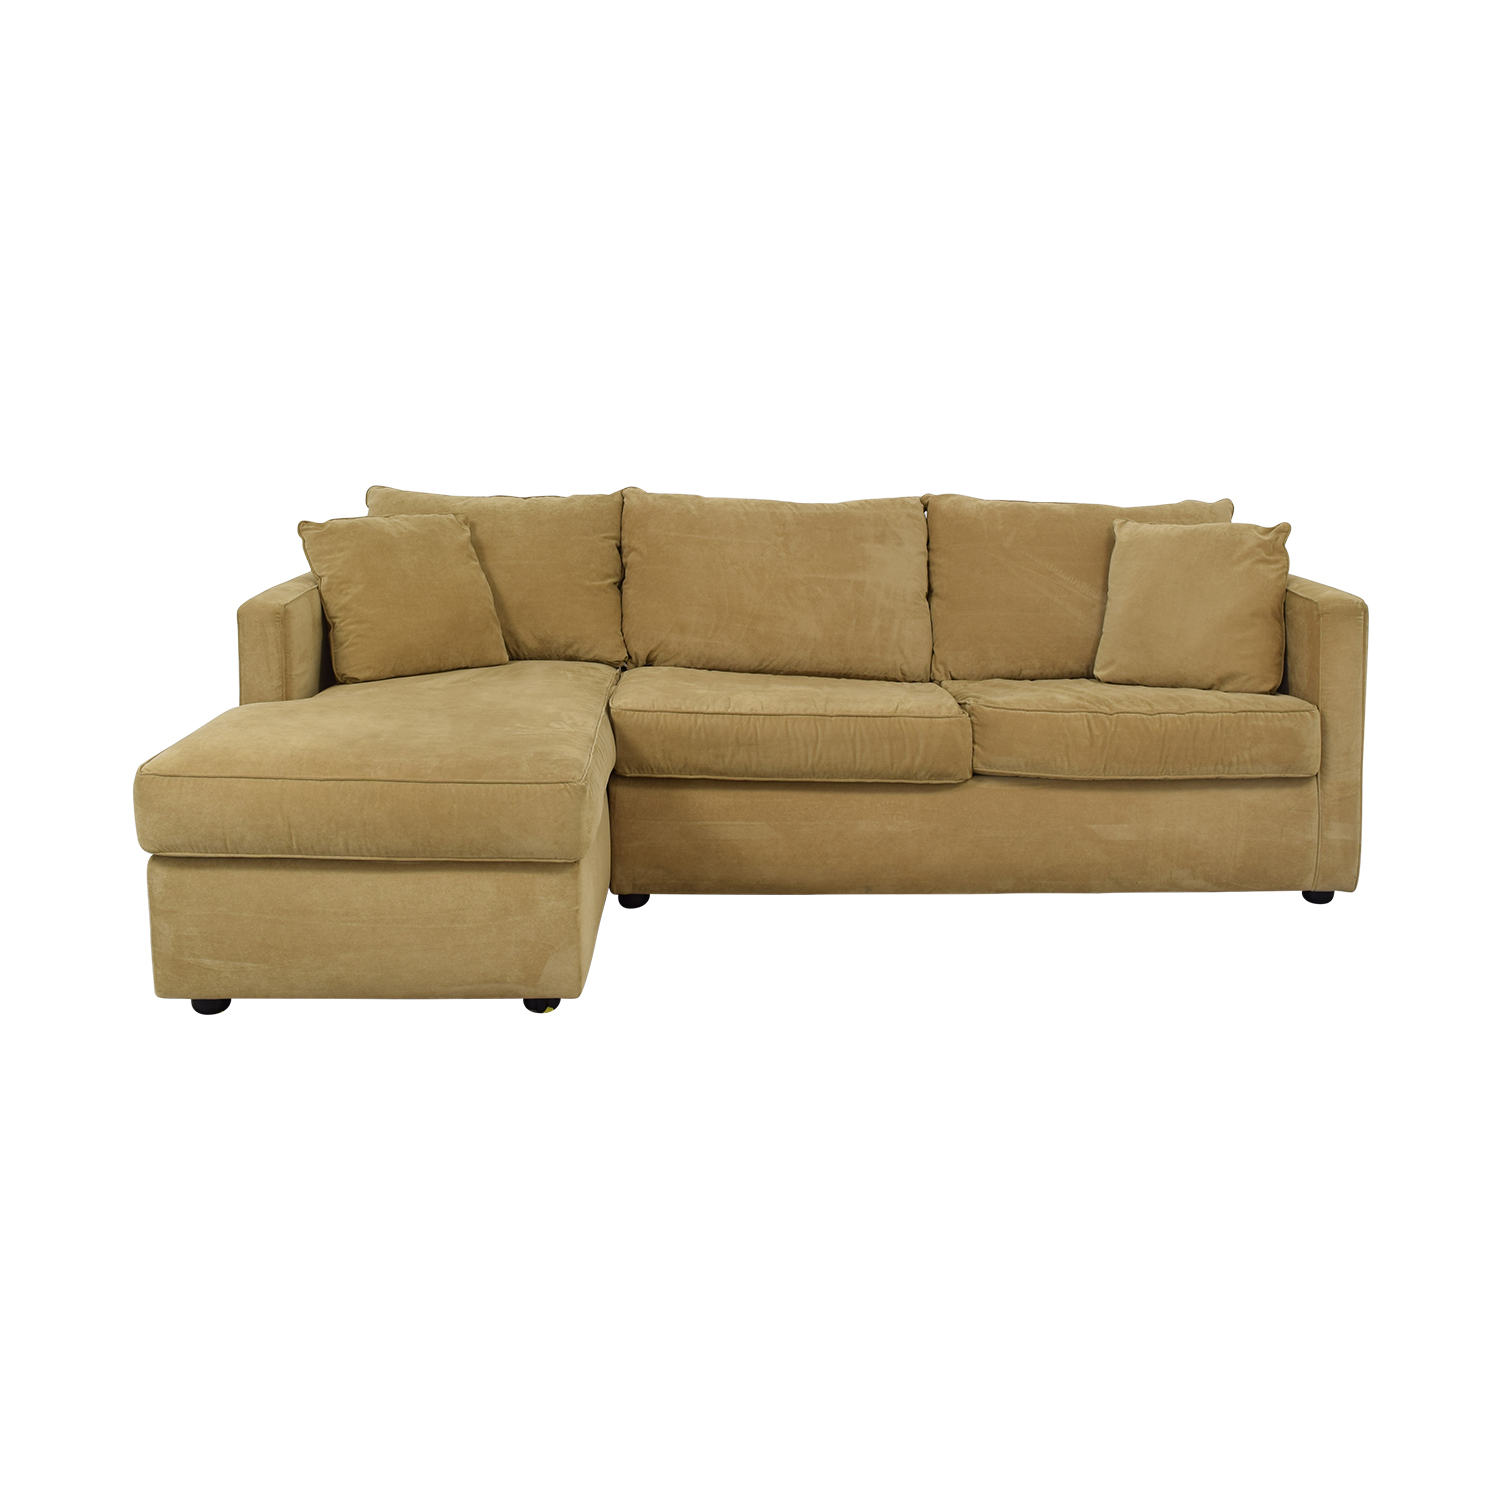 Klaussner Klaussner Chaise Sectional Sleeper Sofa coupon